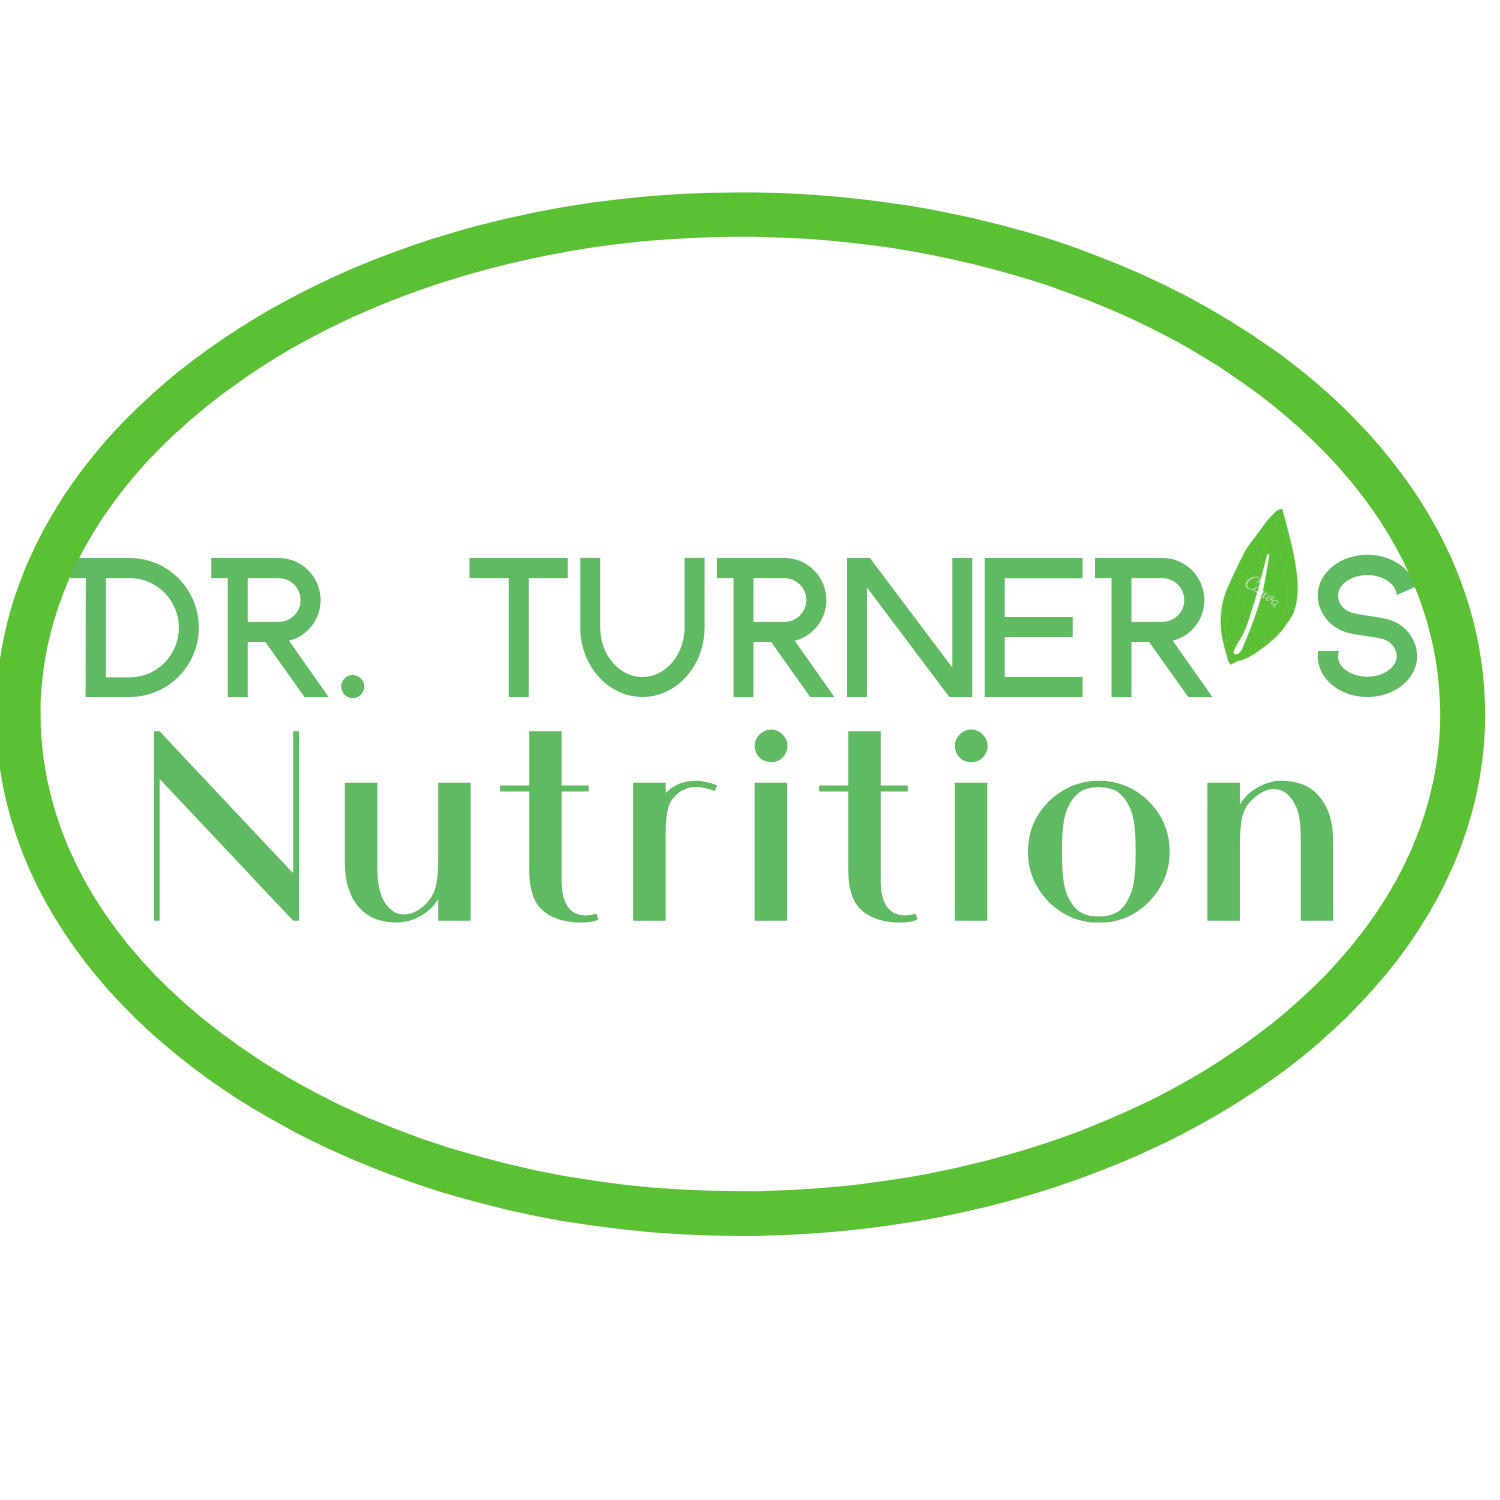 Dr. Turner\'s Nutrition, a Renowned Nutritional Center in Long Beach, CA, has Recently Launched Its New Website